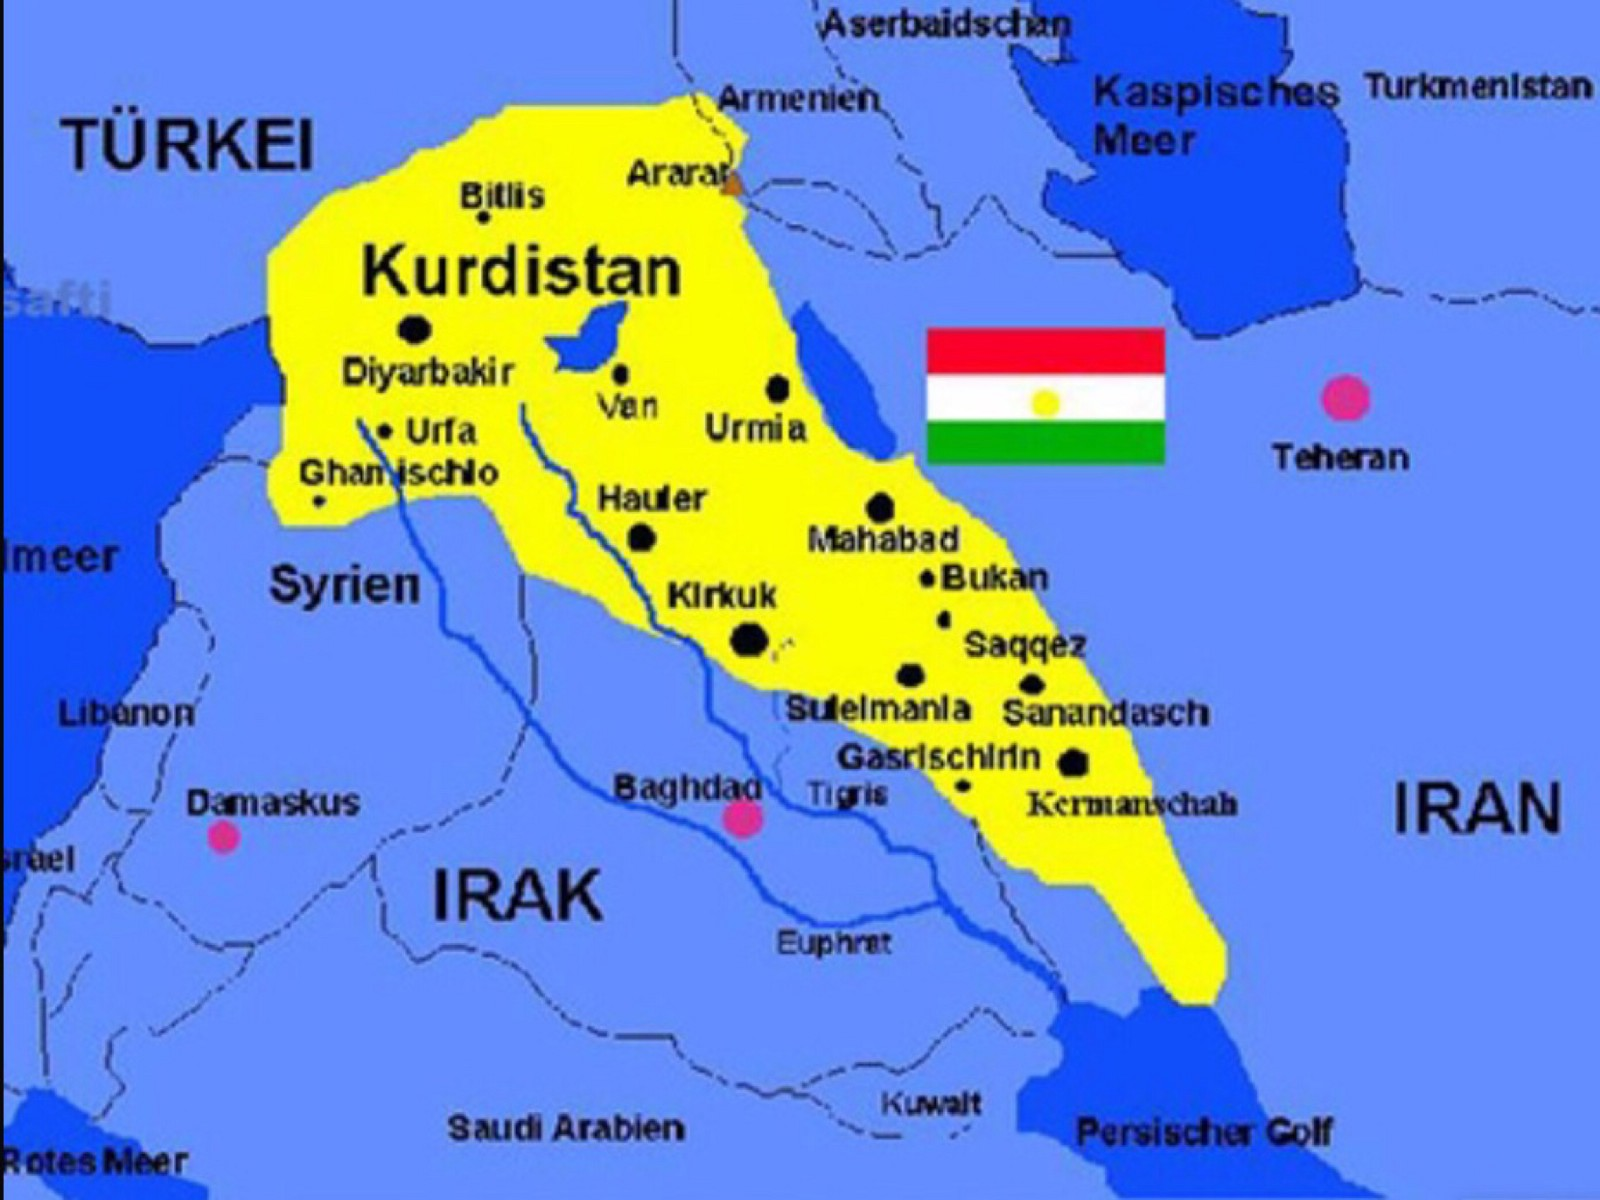 Kurdistan why it is not on the map mrkailani medium this is just a random map i found on the internet that i thought was inaccurate i know for a fact that kurdistan does not reach the persian or arabian sciox Image collections